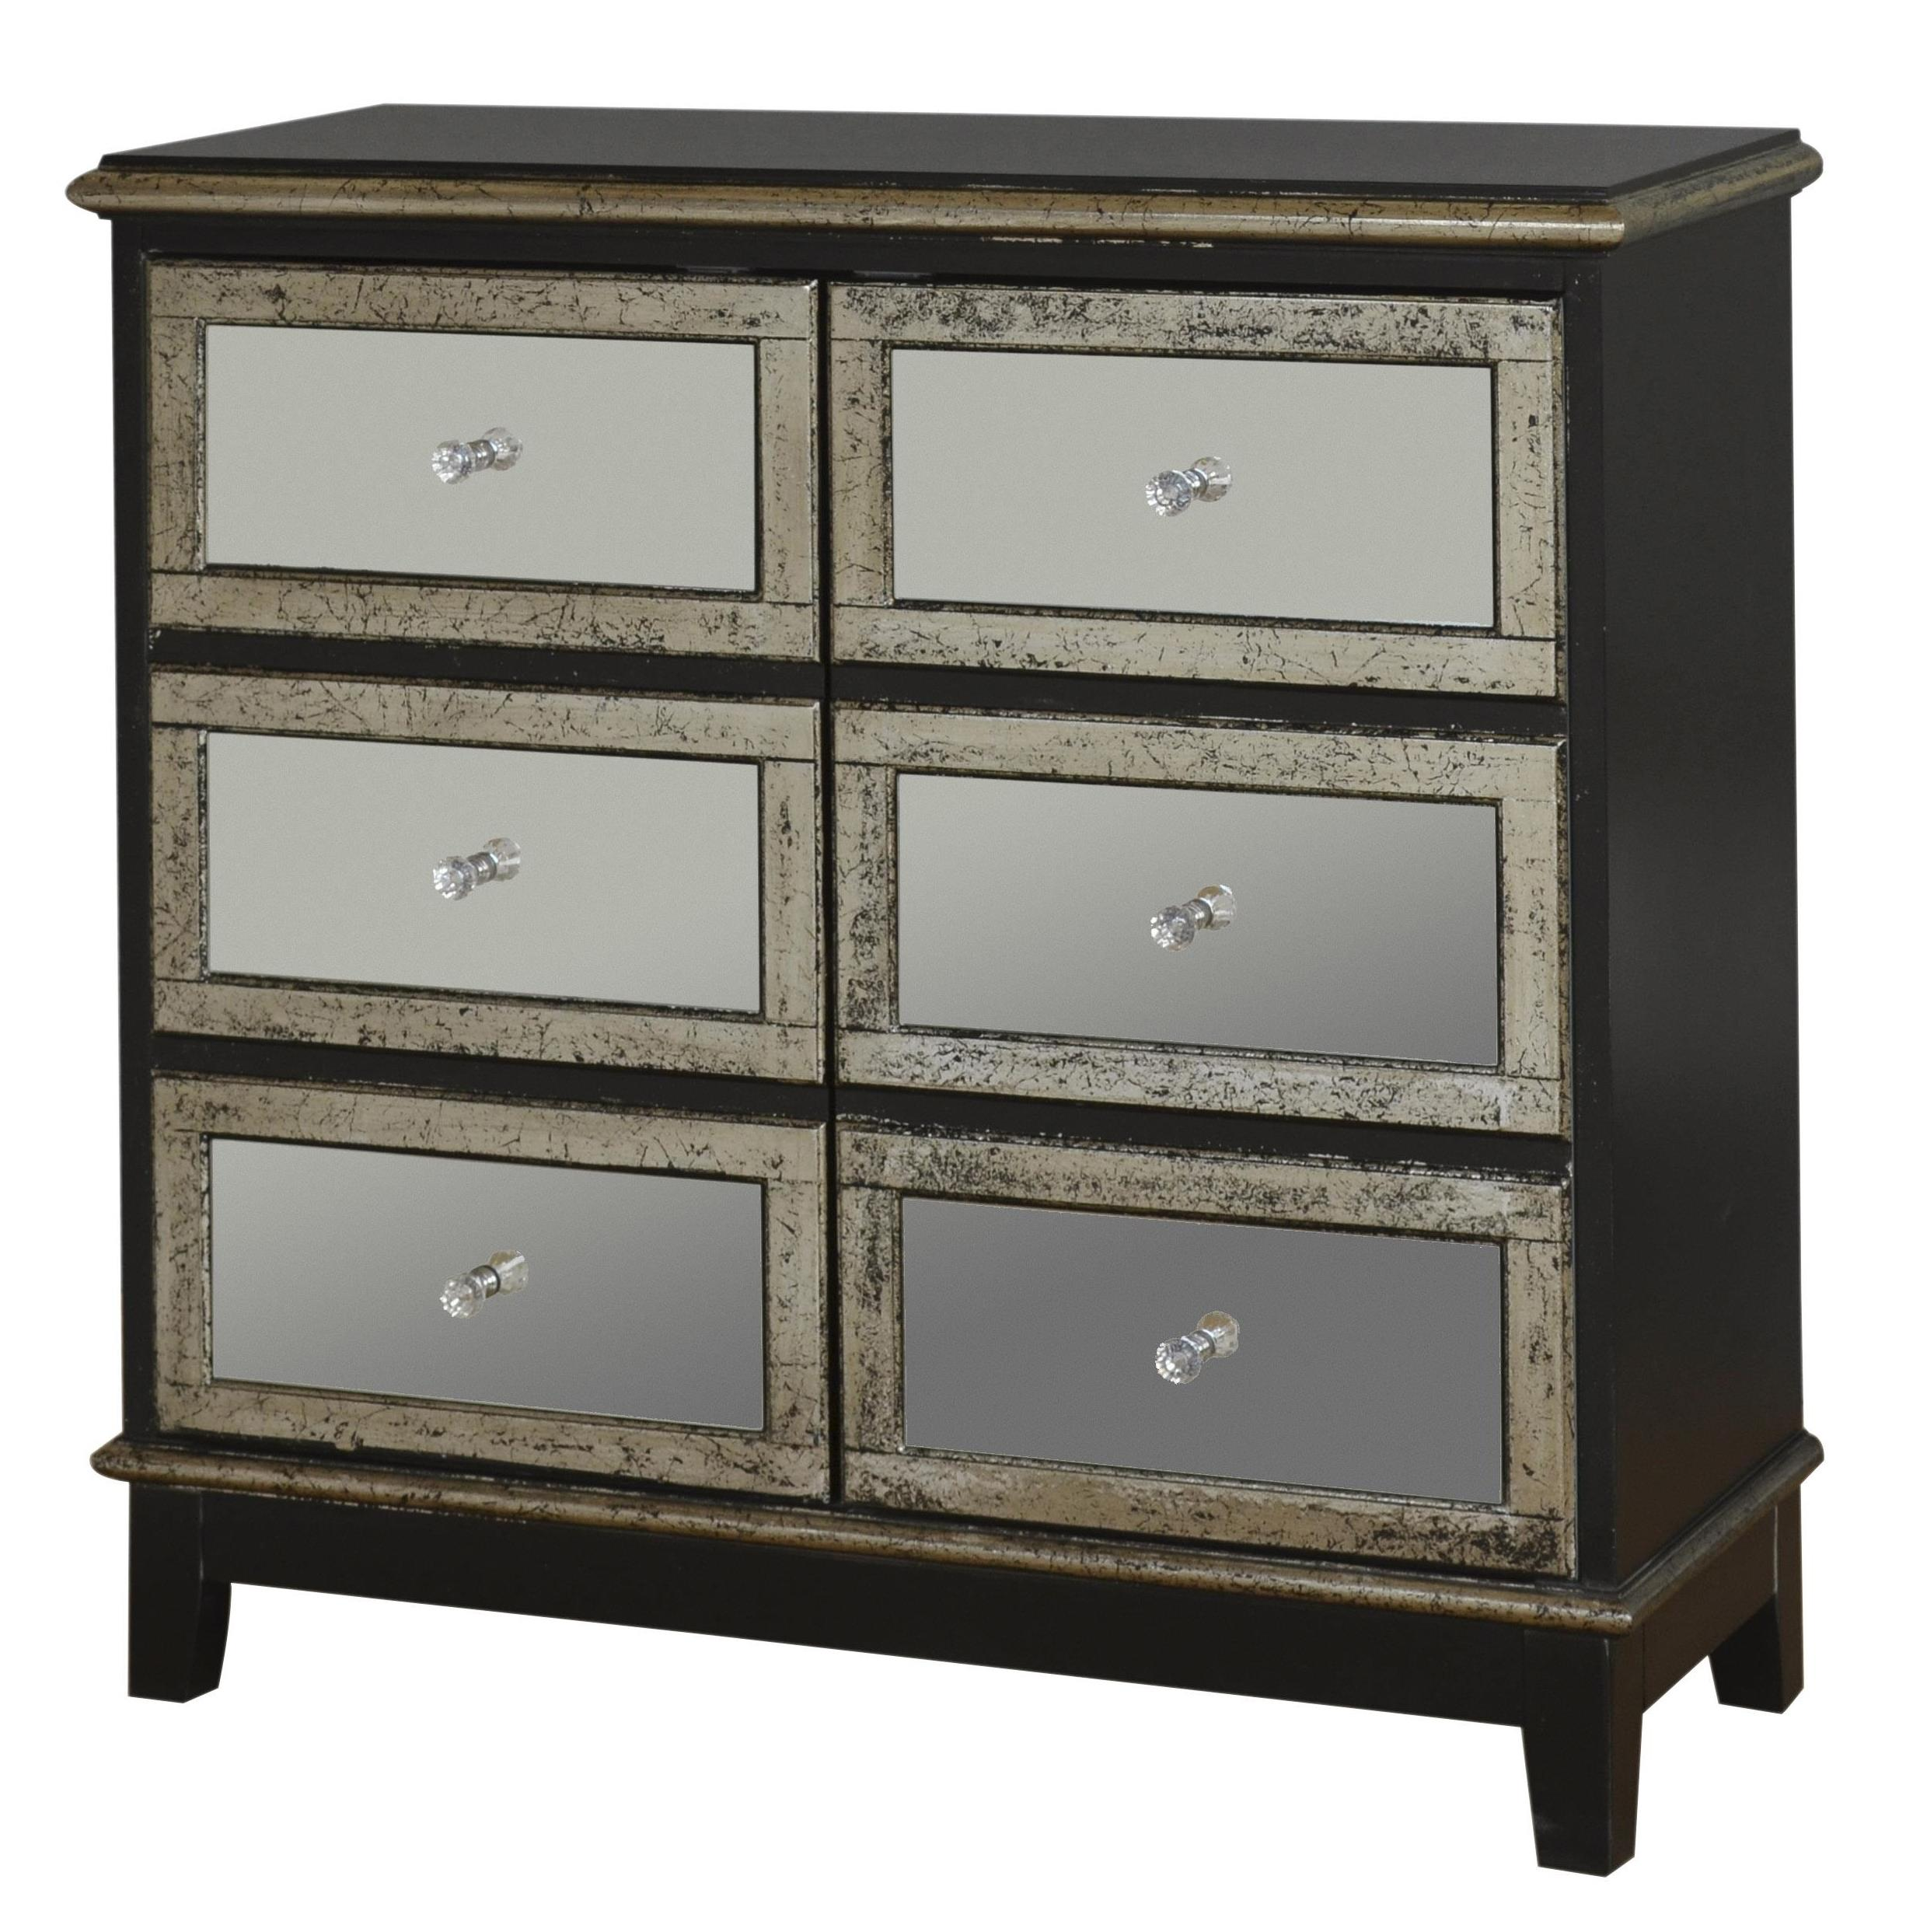 Pulaski Furniture Accents Accent Chest - Item Number: 766005